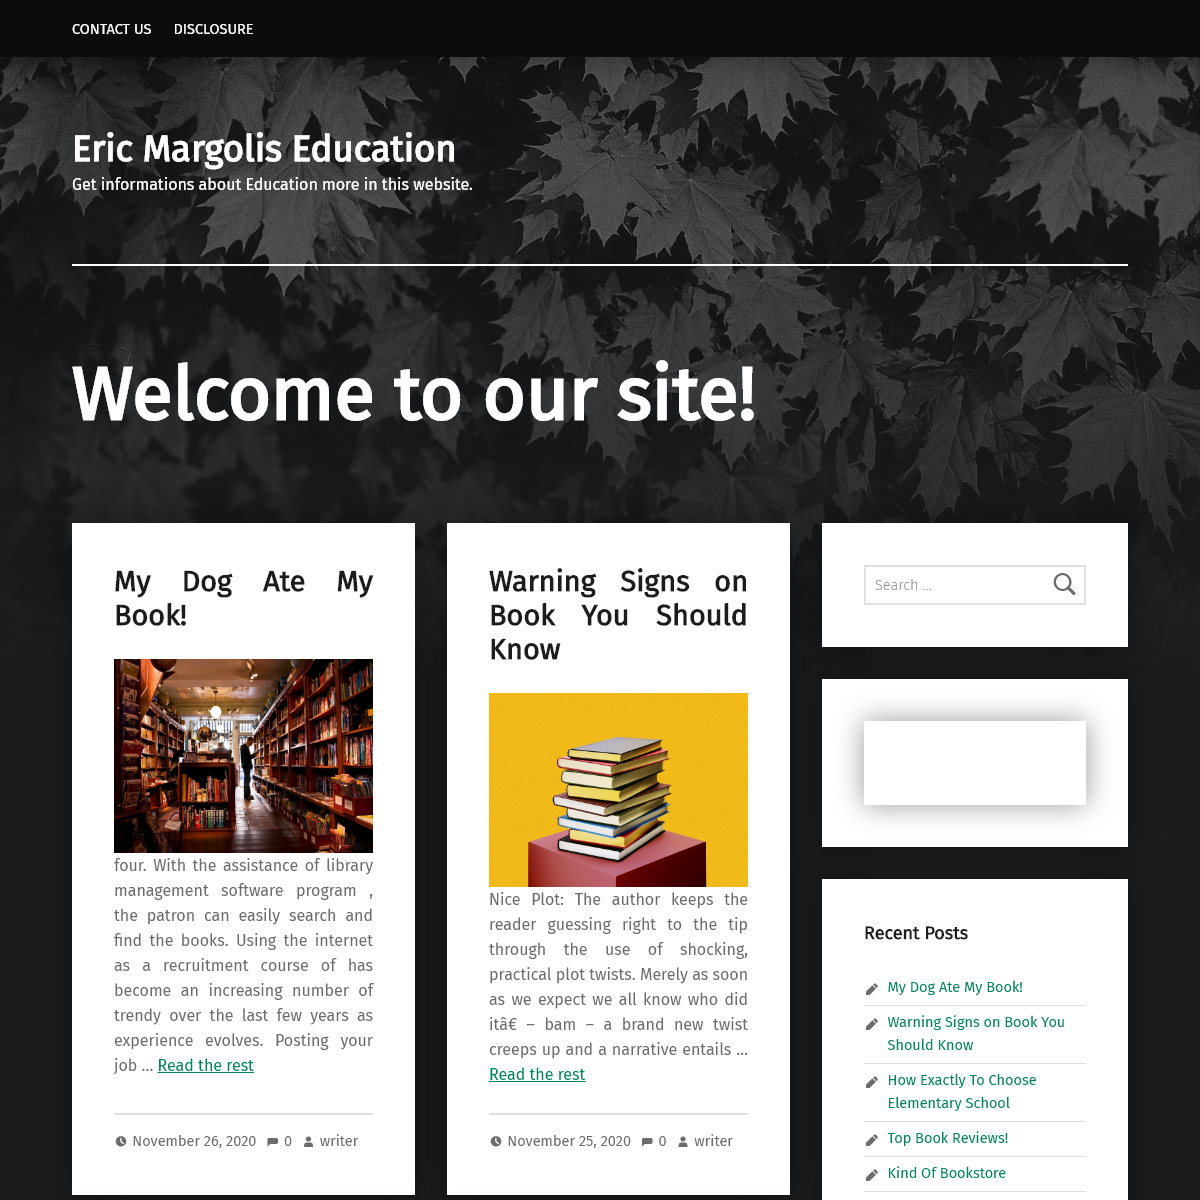 Eric Margolis Education – Get informations about Education more in this website.